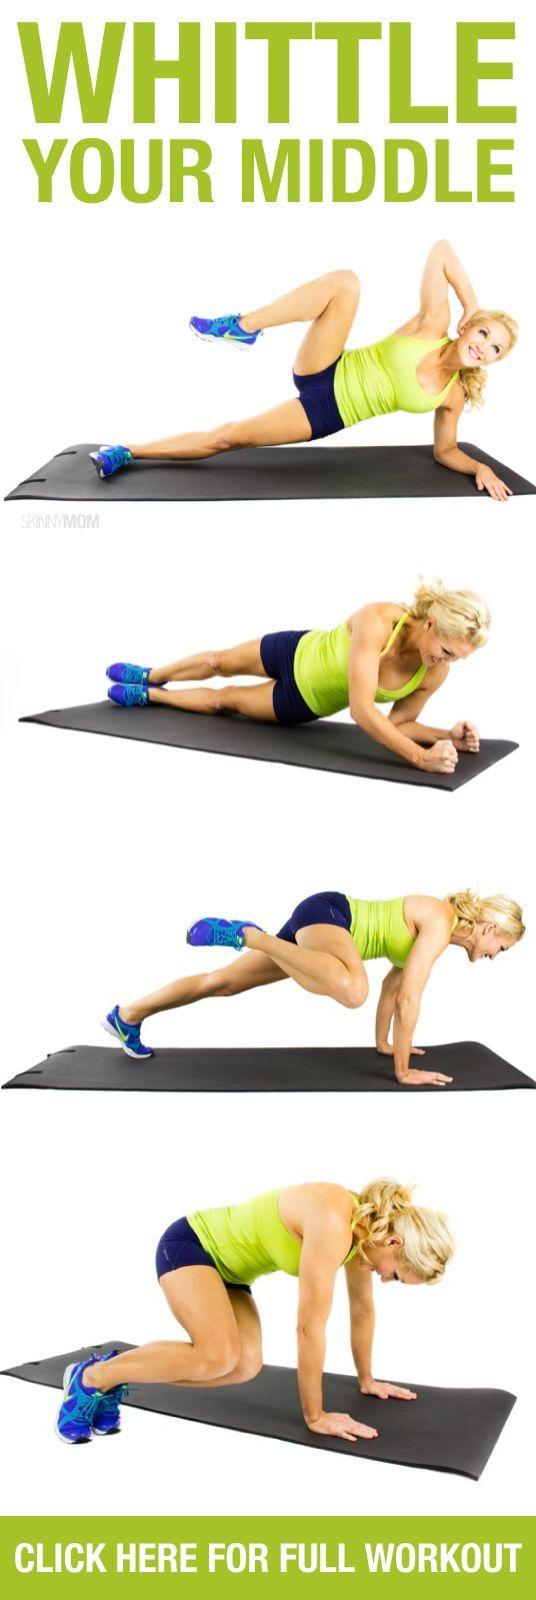 Get those abs in shape with these exercises!